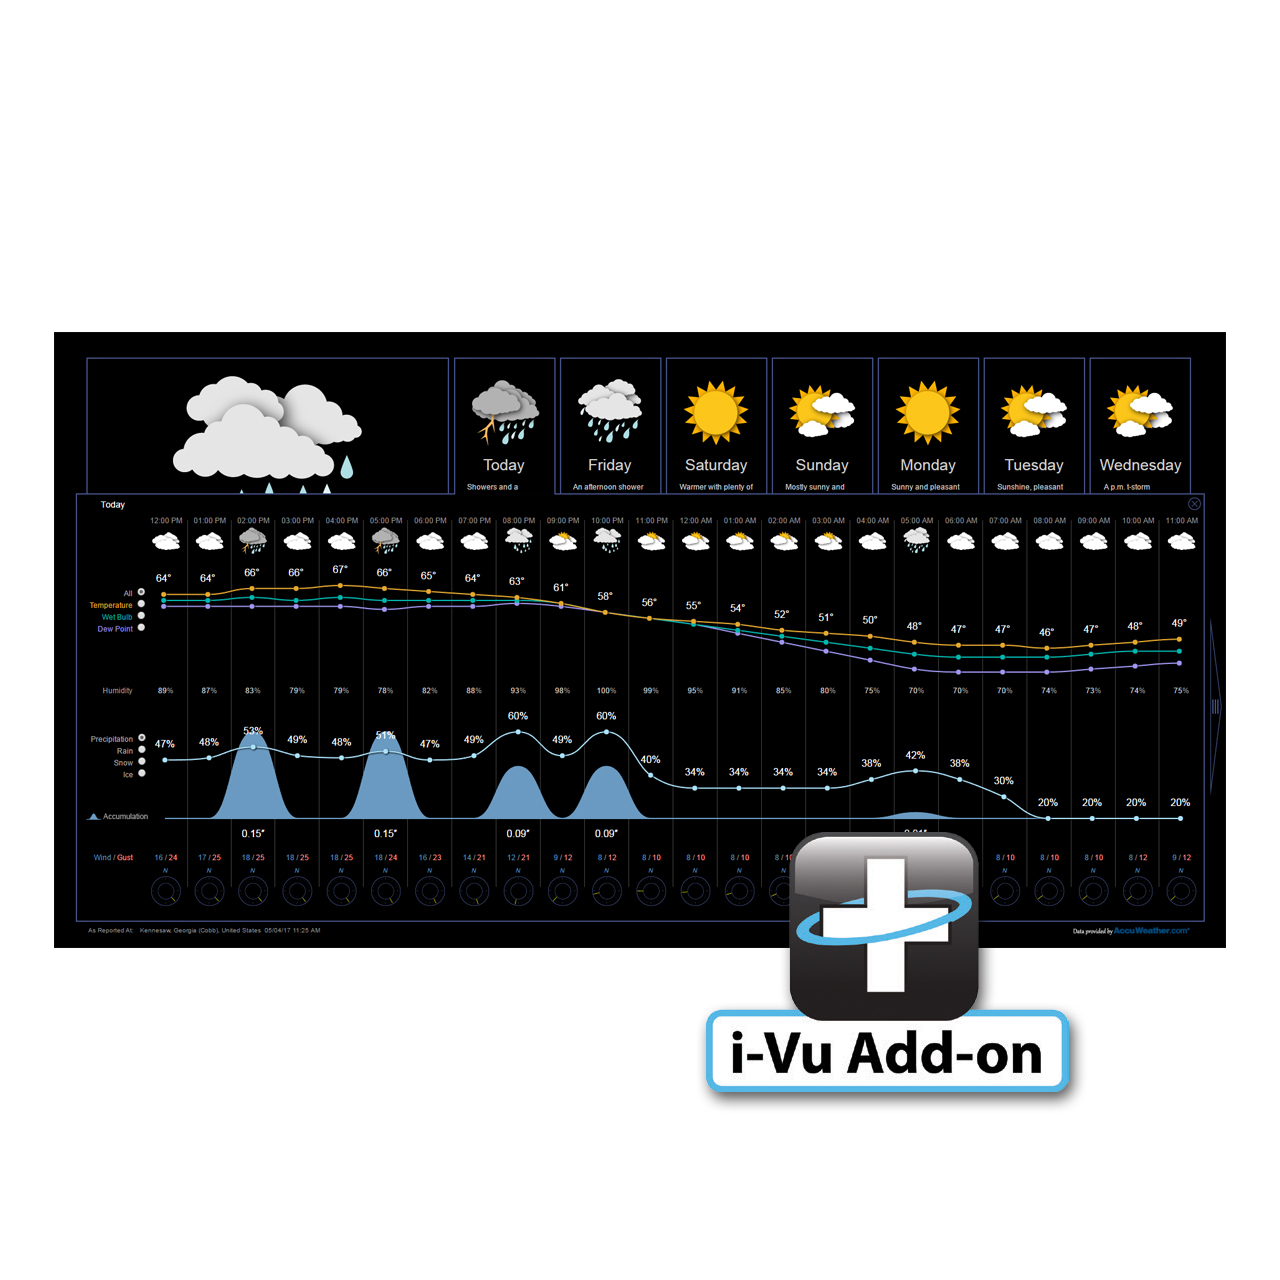 carrier-ADD-HR-WTHR-hourly-weather-add-on-for-ivu